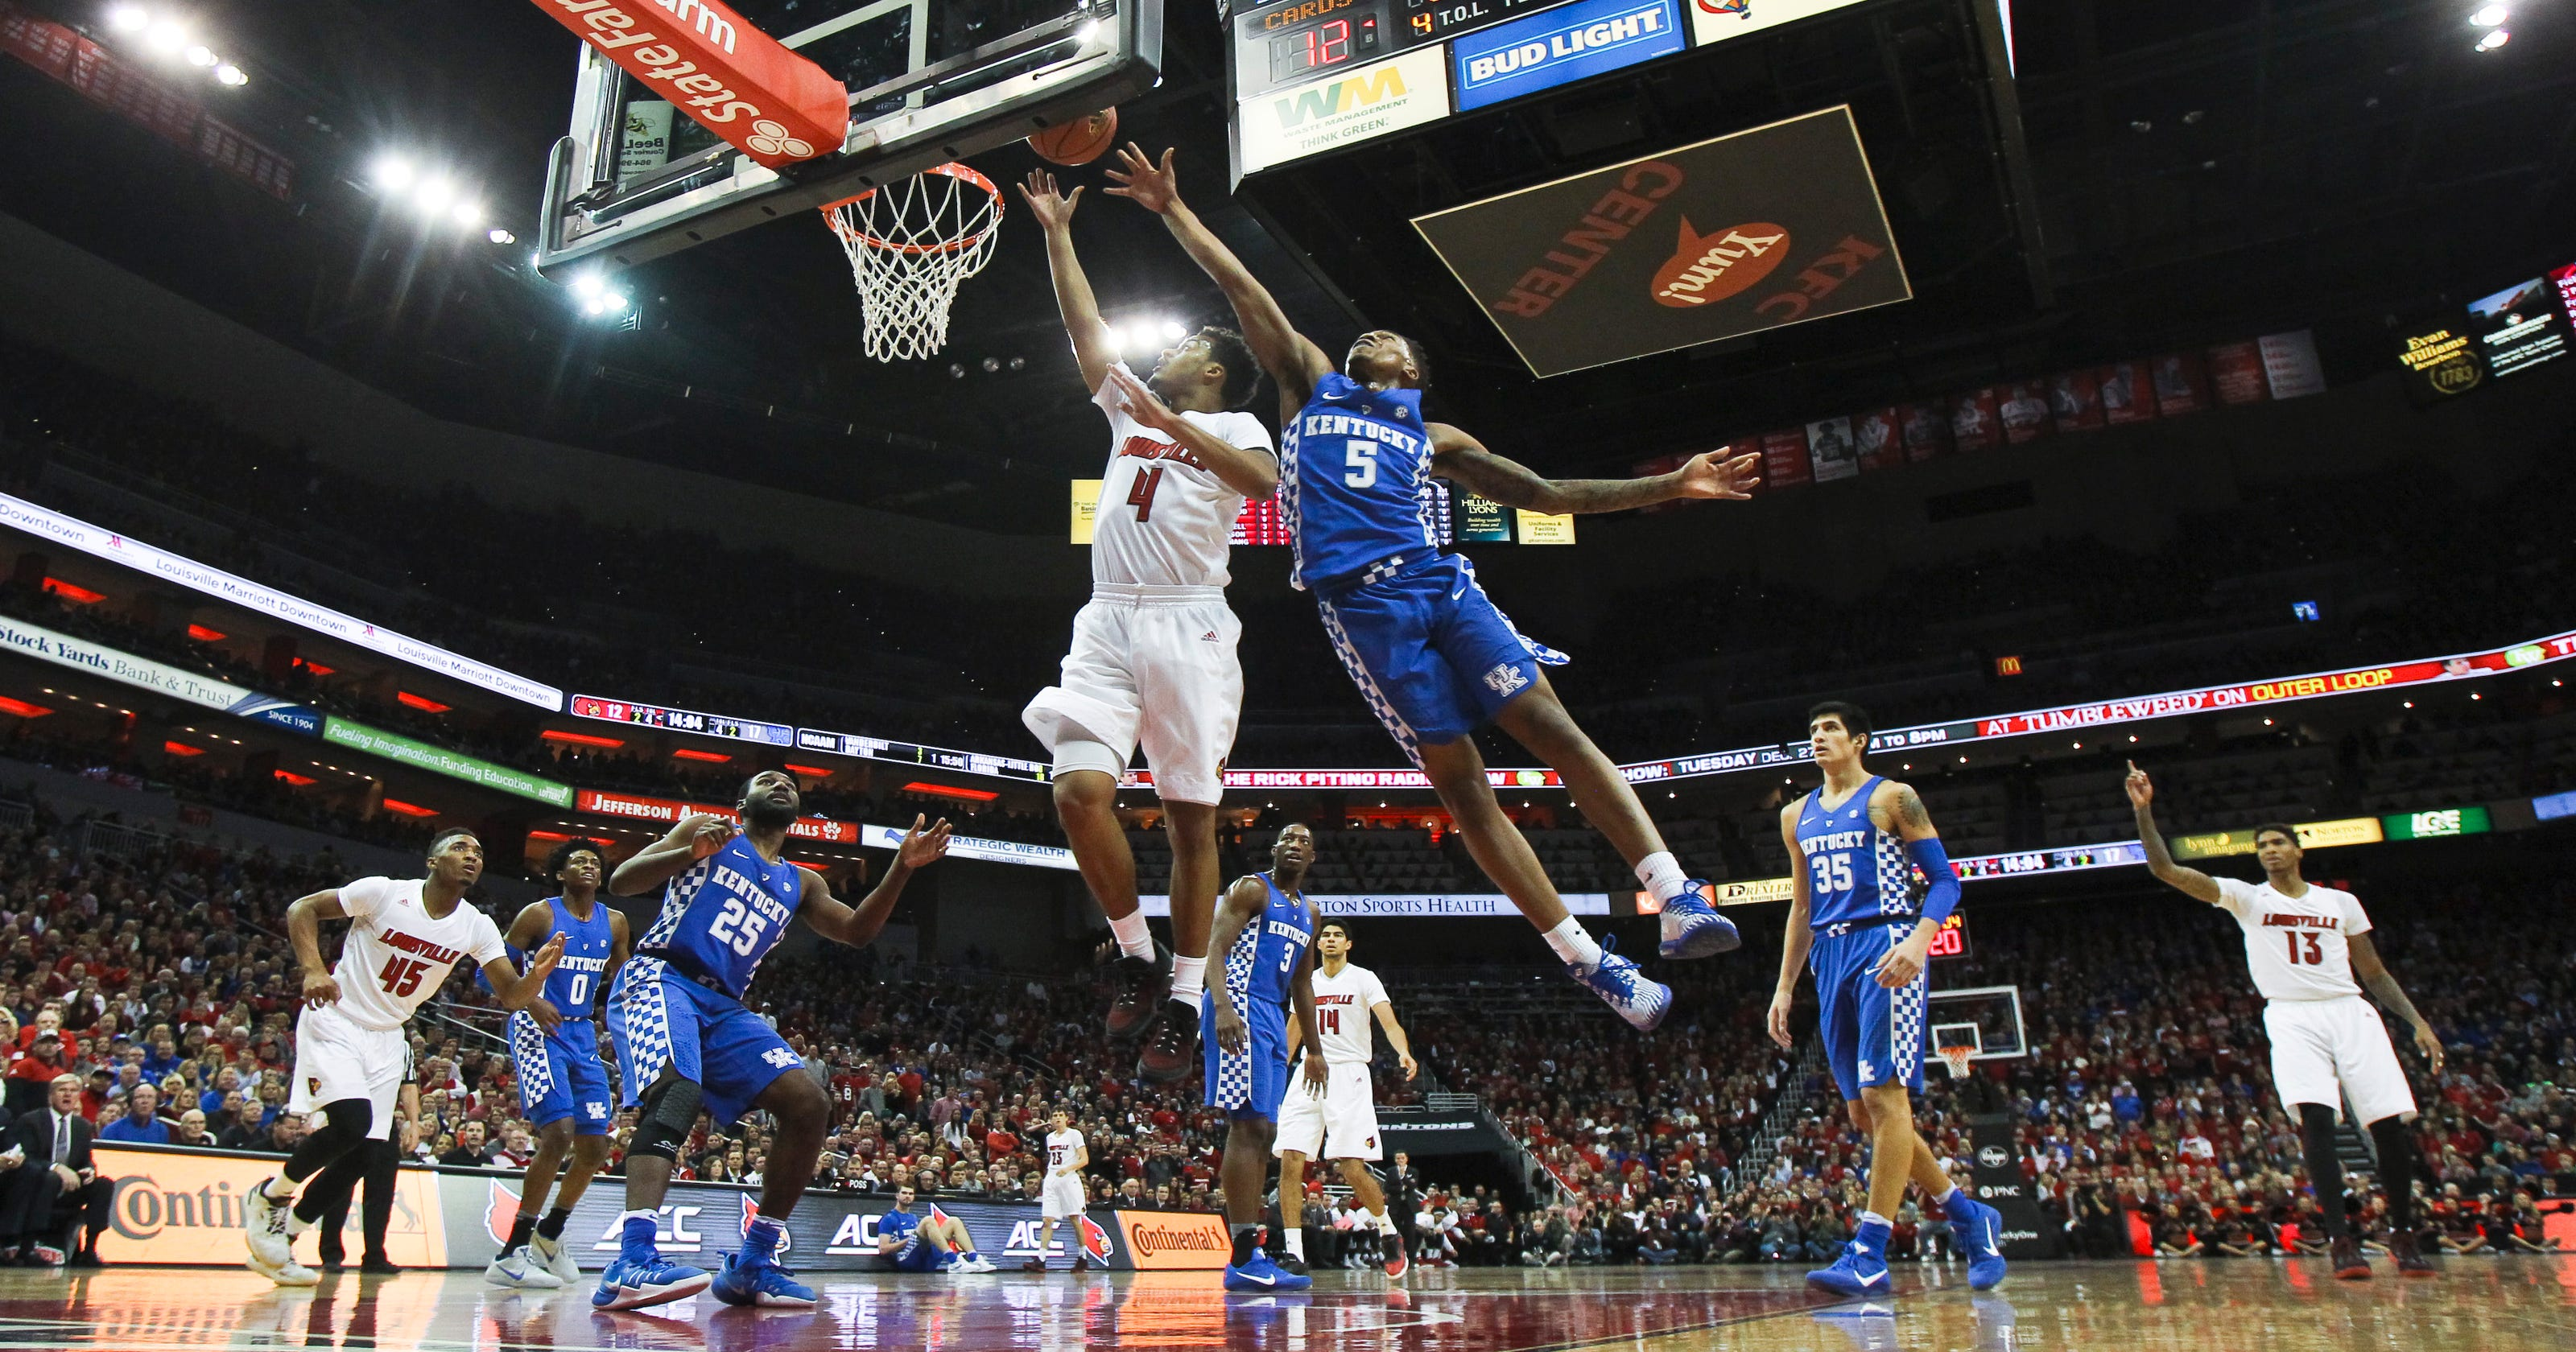 live scores and updates from the kentucky-louisville basketball game